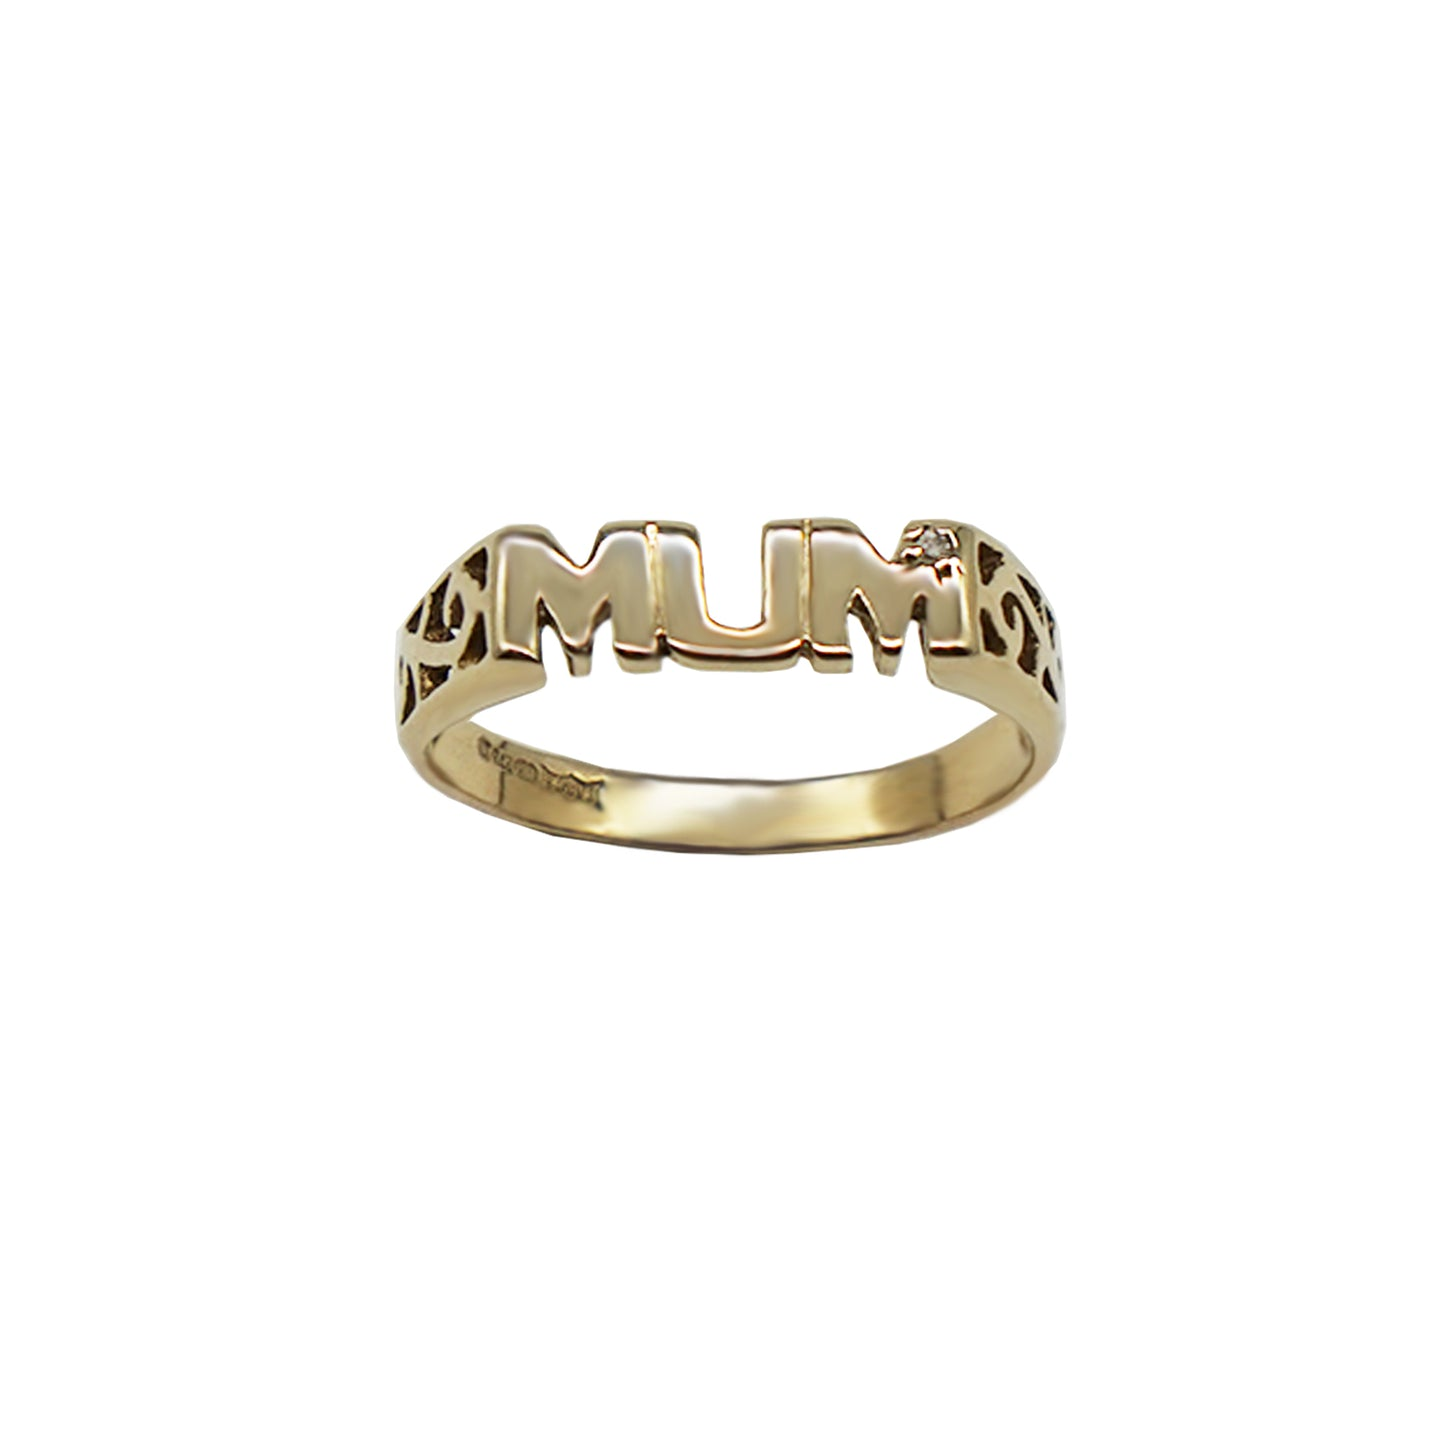 Vintage Mum Ring with small Diamond and trellis sides, hallmarks on inner band. White background.